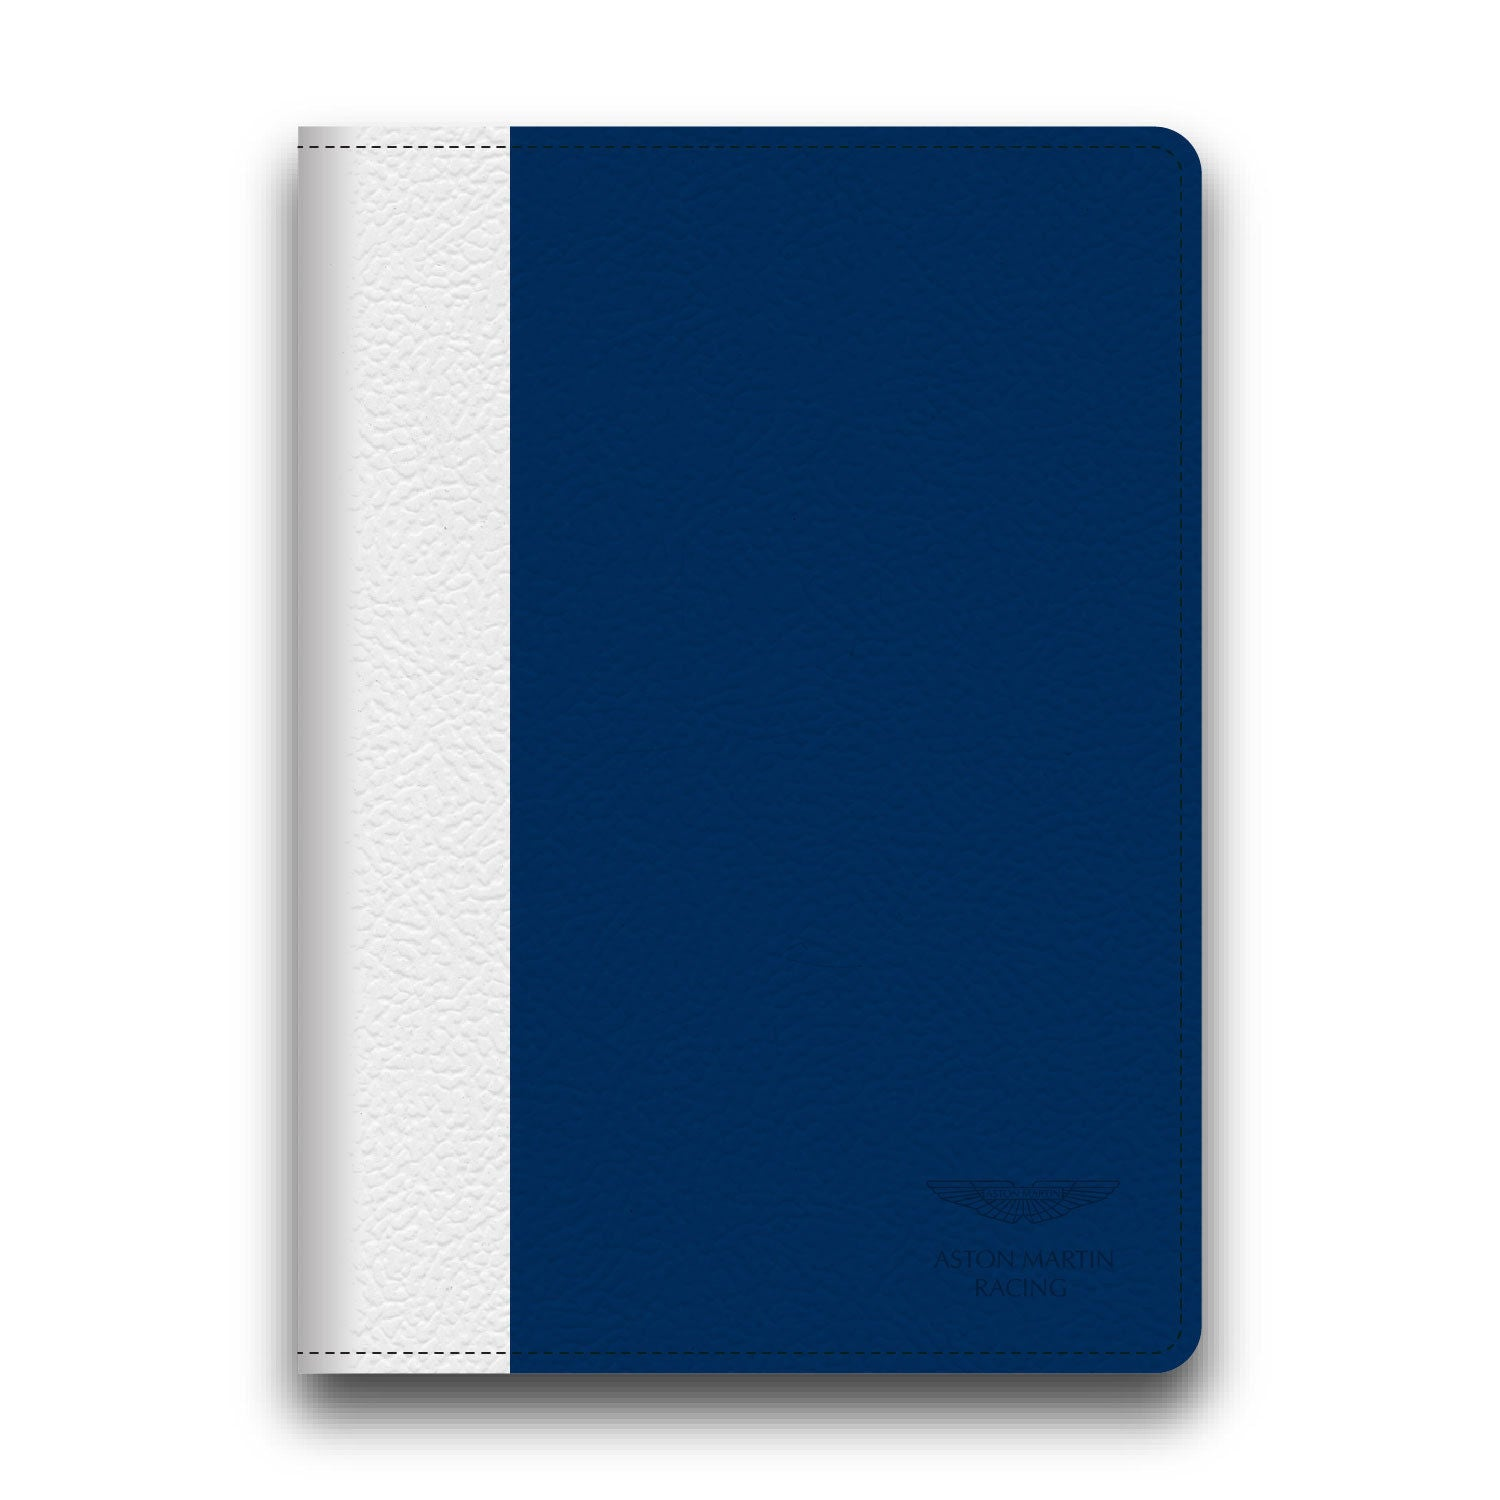 Aston Martin Racing Blue/White Leather Stripe Apple iPad Air Book Case Blue